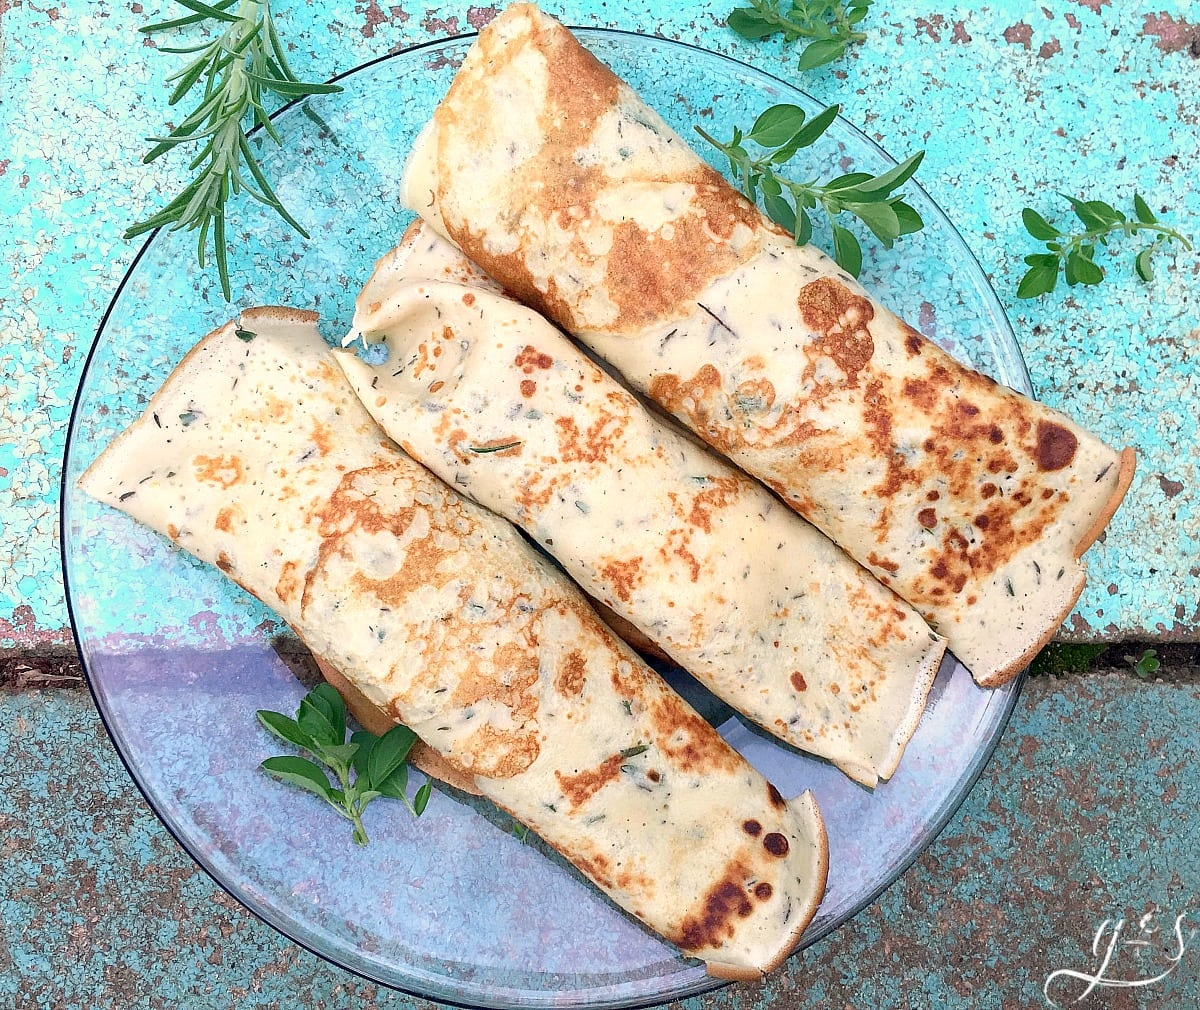 Savory Vegetarian Crepes | A batch of these thin, savory pancakes with pan-roasted mushrooms, a handful of fresh garden herbs and spoon or two of creamy chèvre will make you reconsider your sweet crepes recipes. This filling and healthy breakfast or brunch will have you singing! Everyone, especially vegetarians, will love this delicious and fun meal idea.